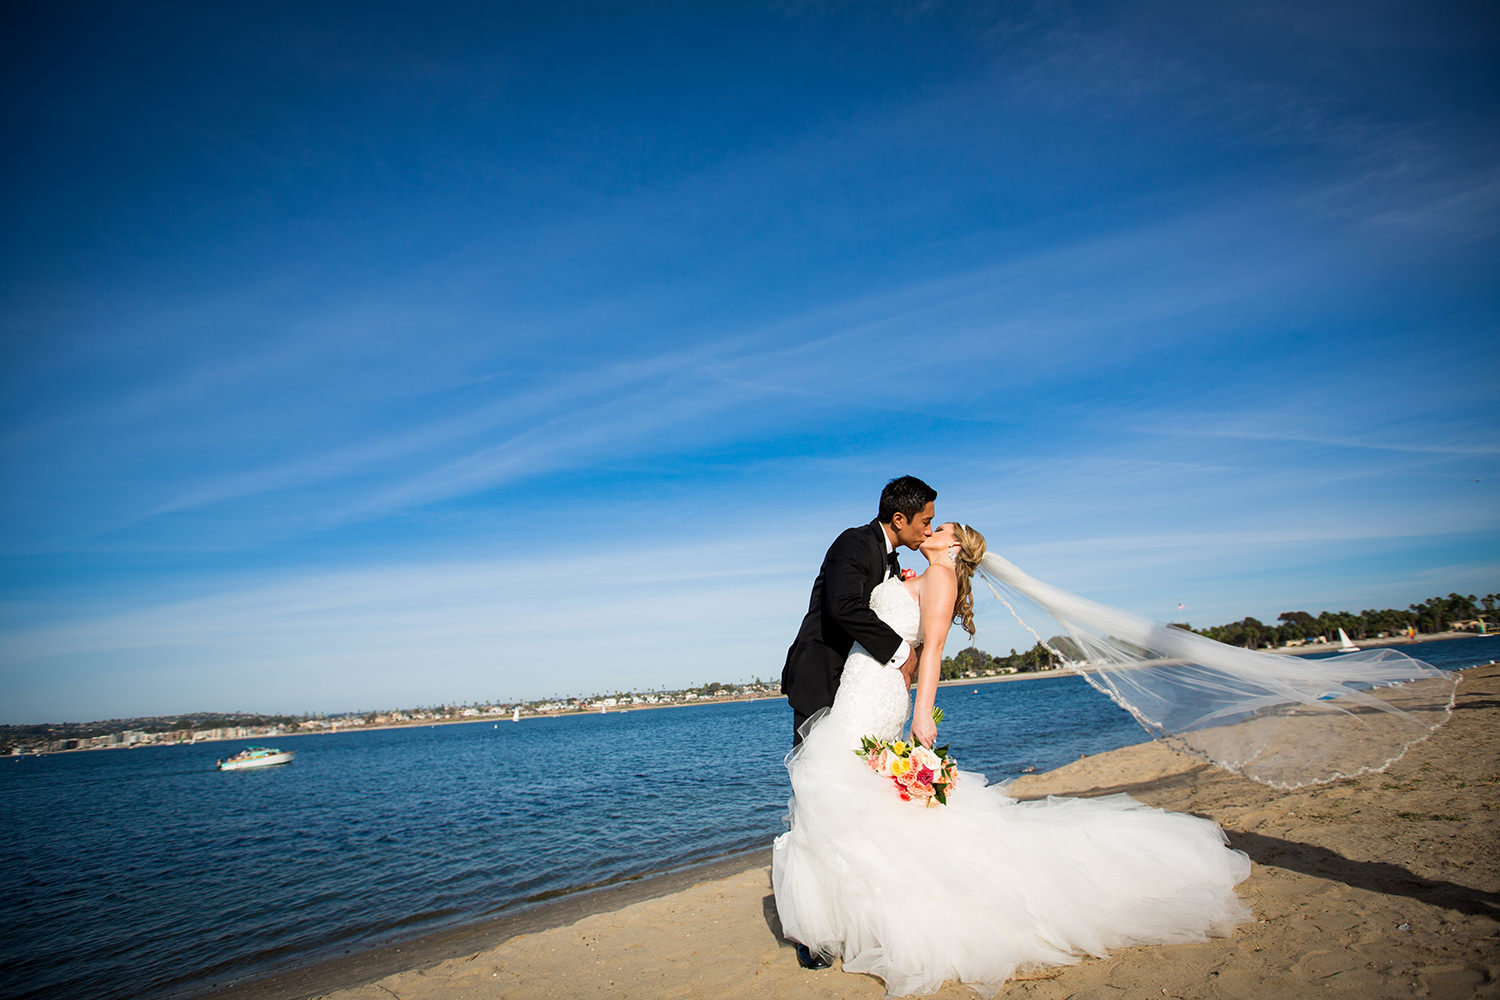 brides veil blowing in the wind bay in background